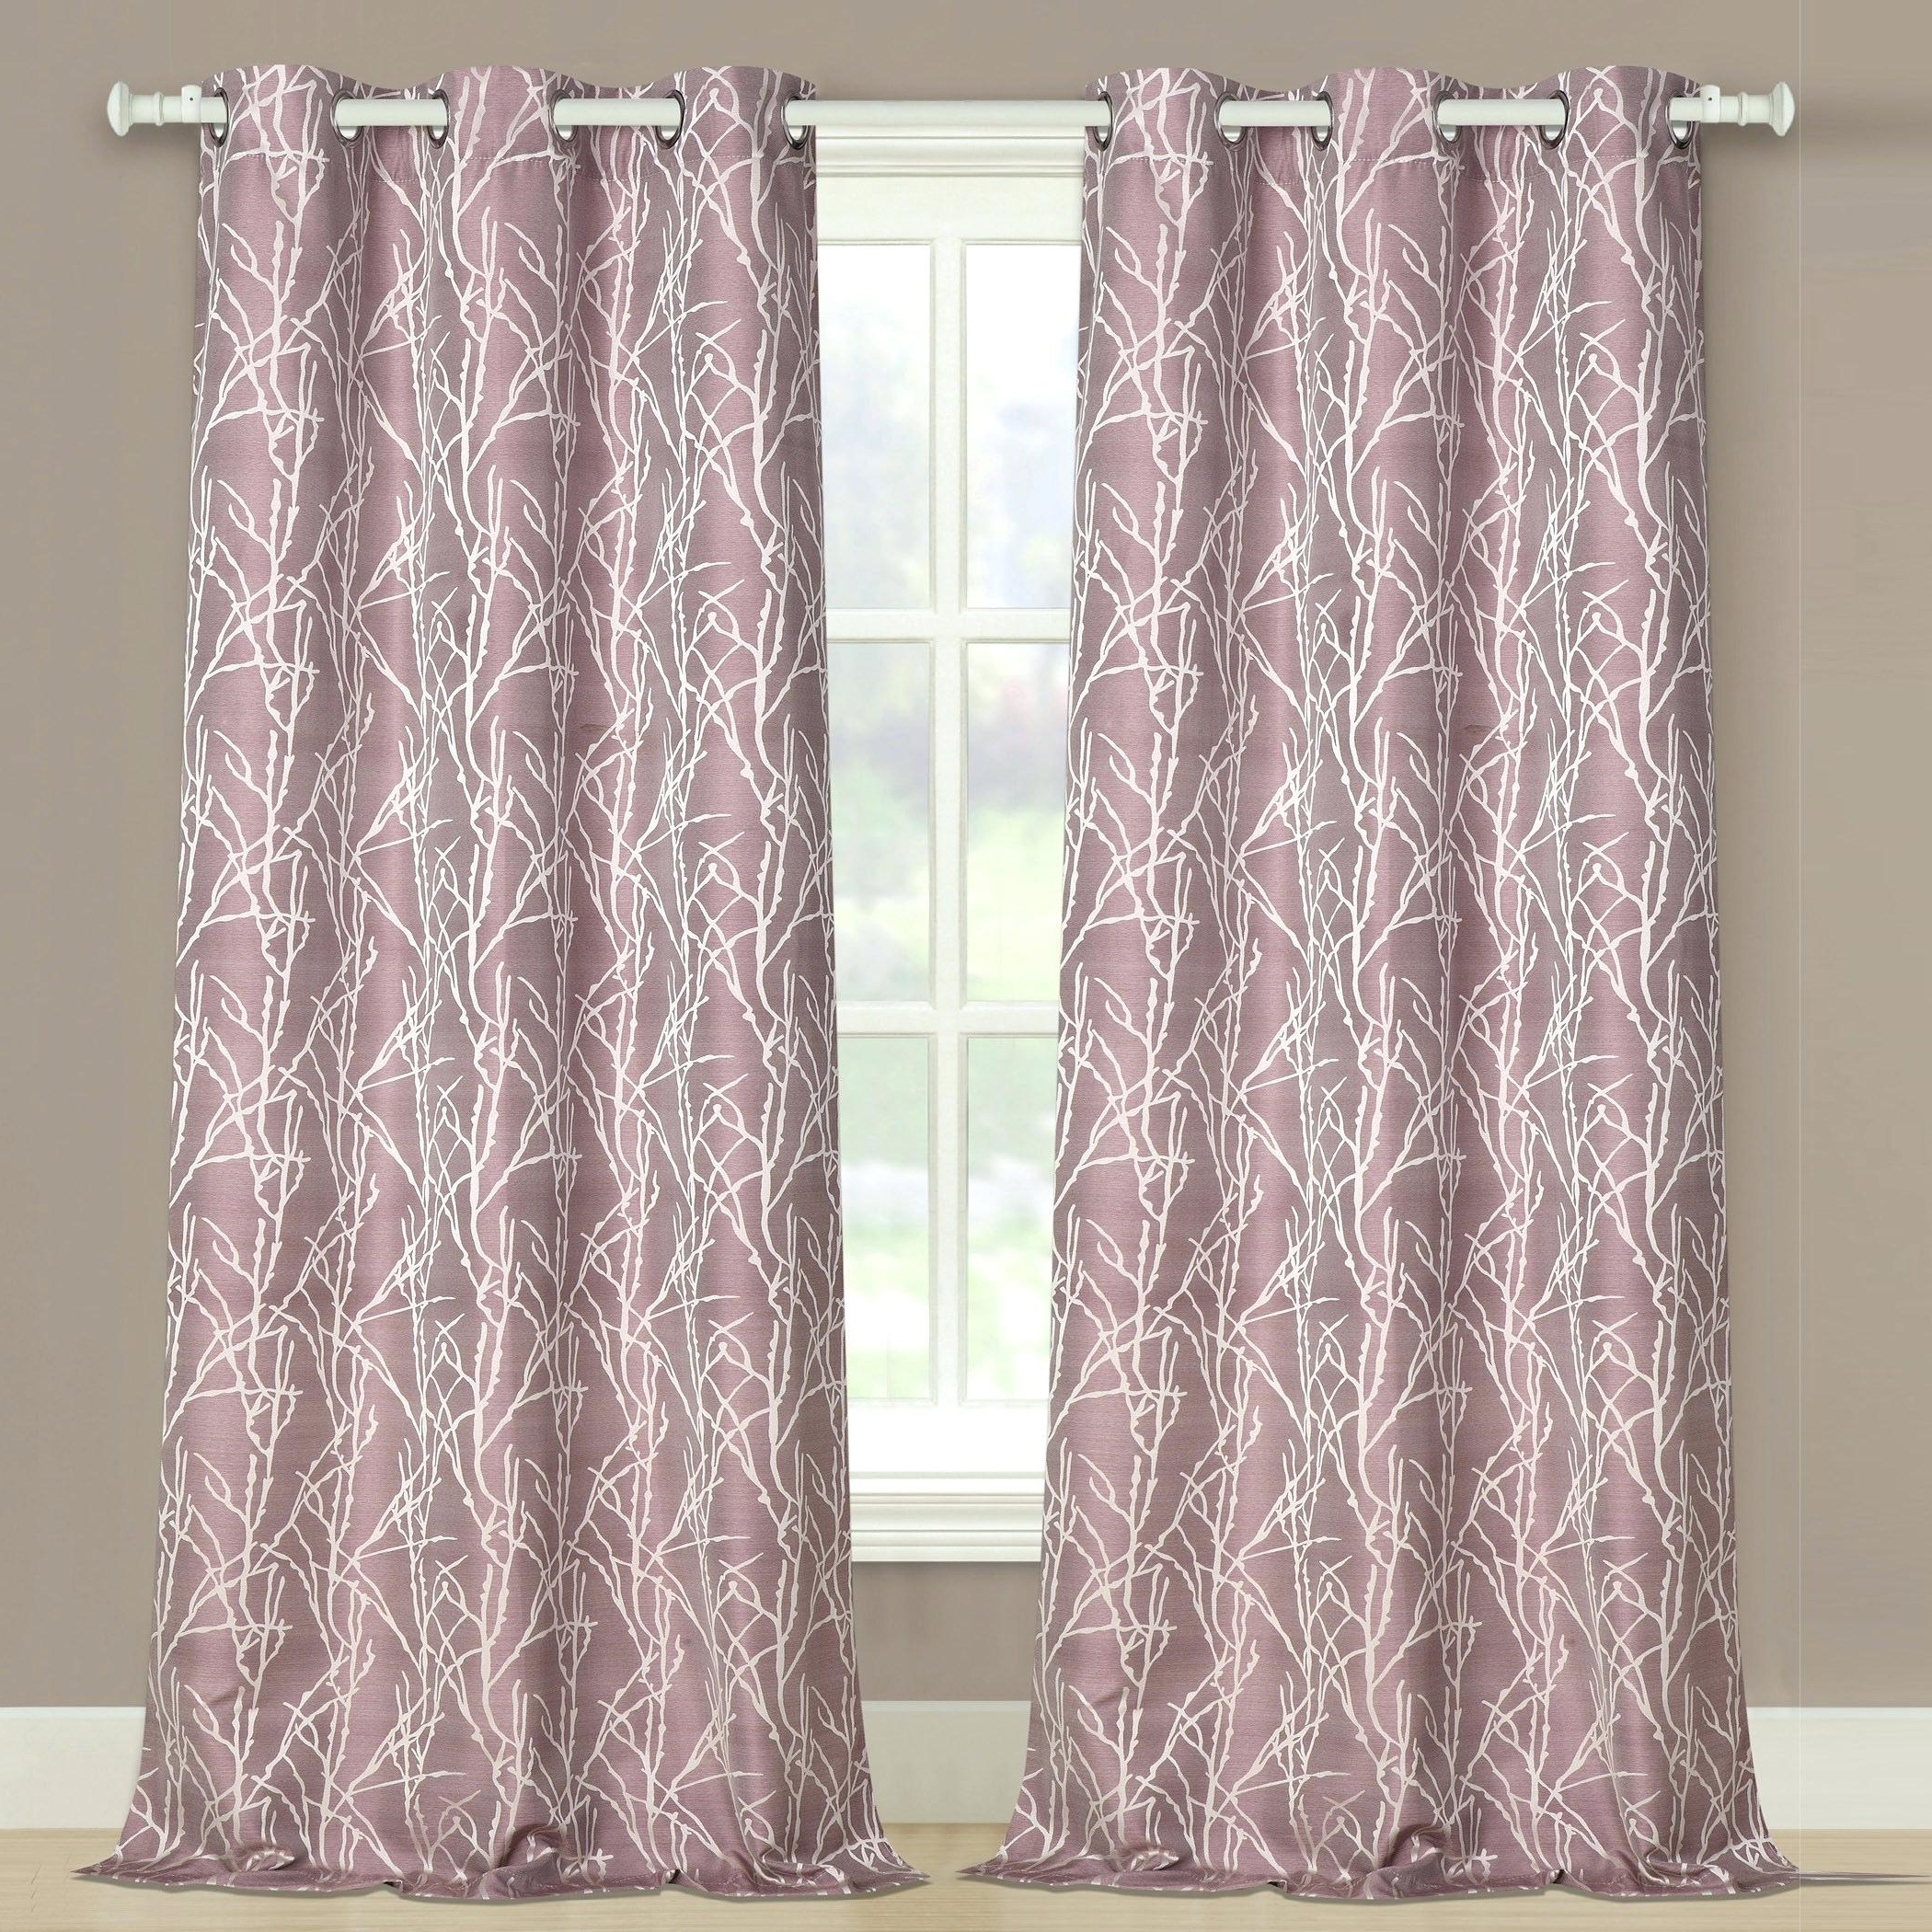 Twig Insulated Blackout Curtain Panel Pairs With Grommet Top For Most Popular Curtain Panel Pairs Thermal – Fxlegends (View 13 of 20)